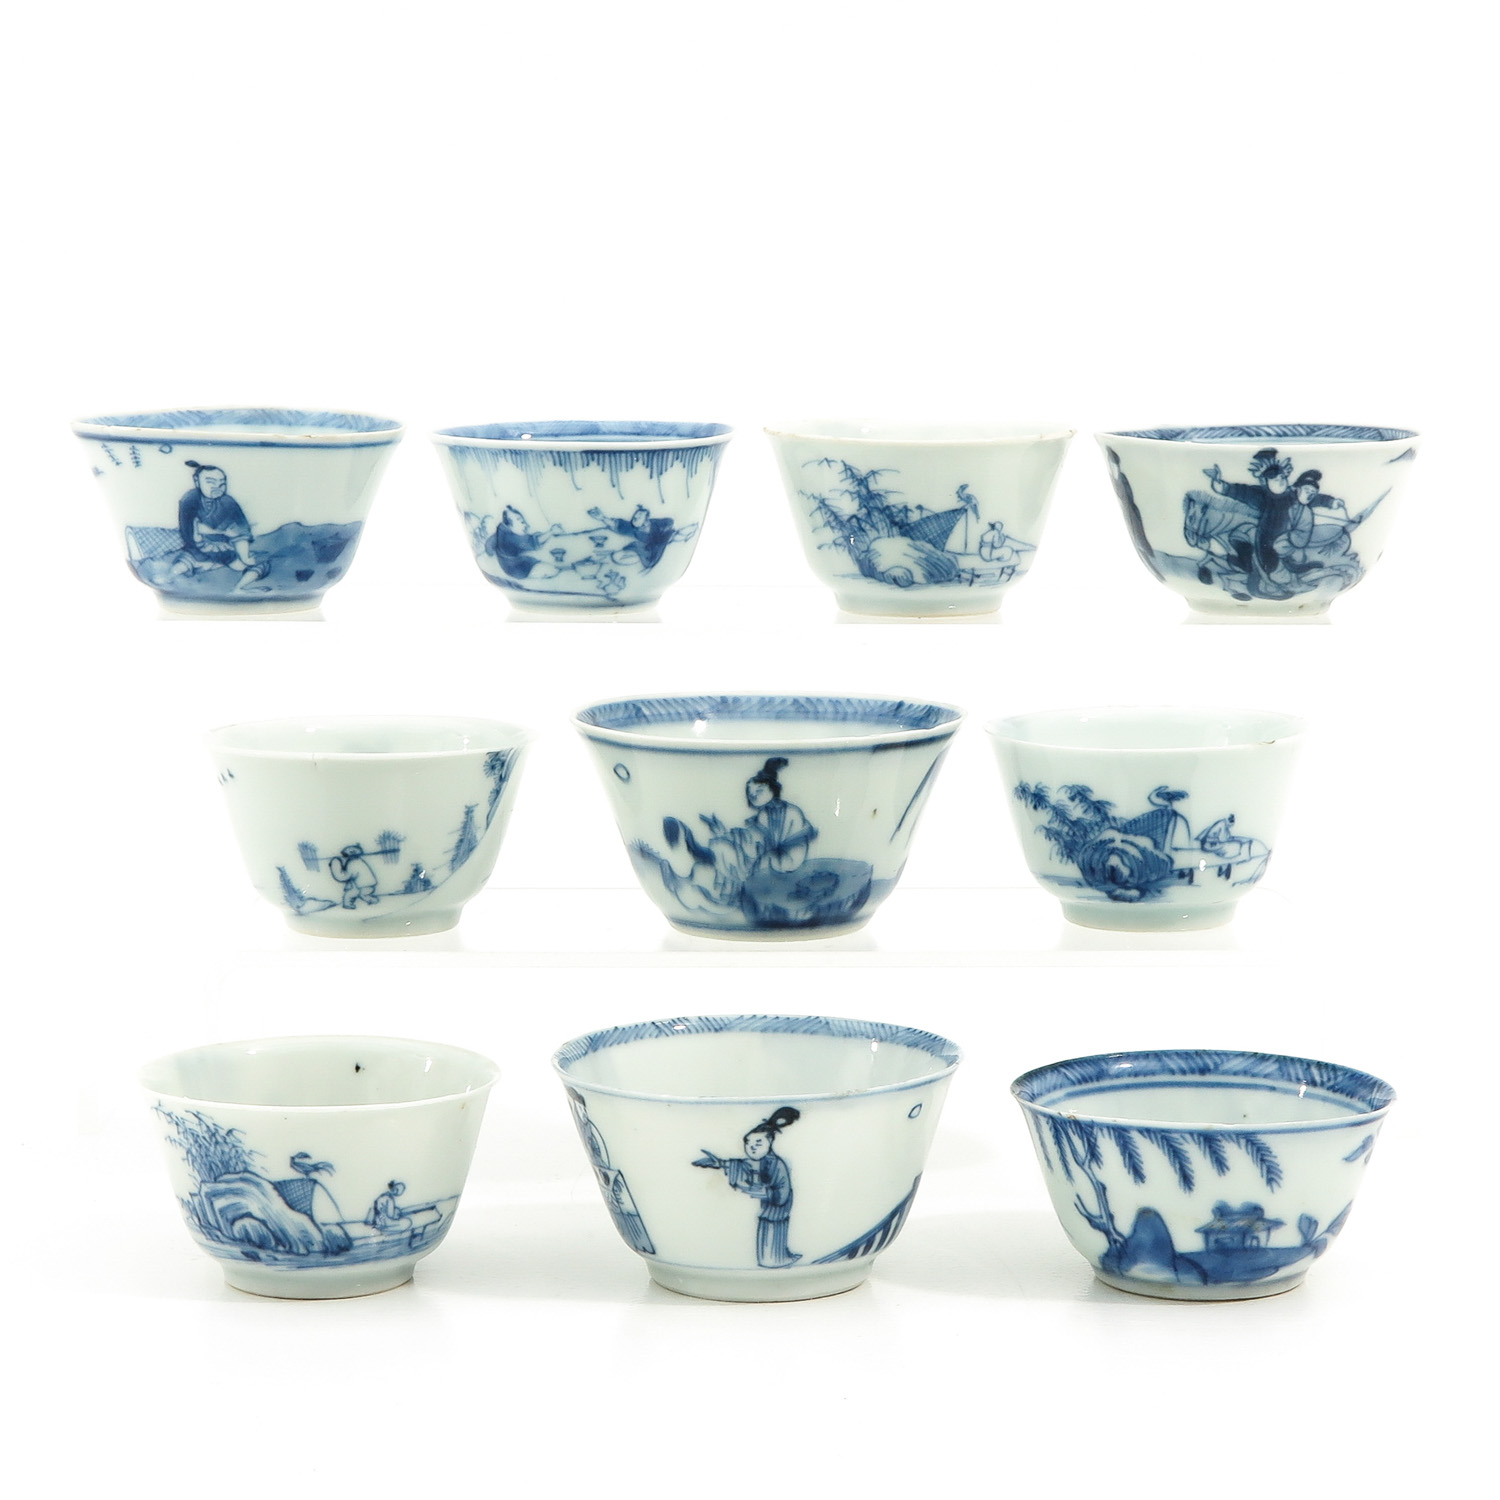 A Collection of 10 Blue and White Cups